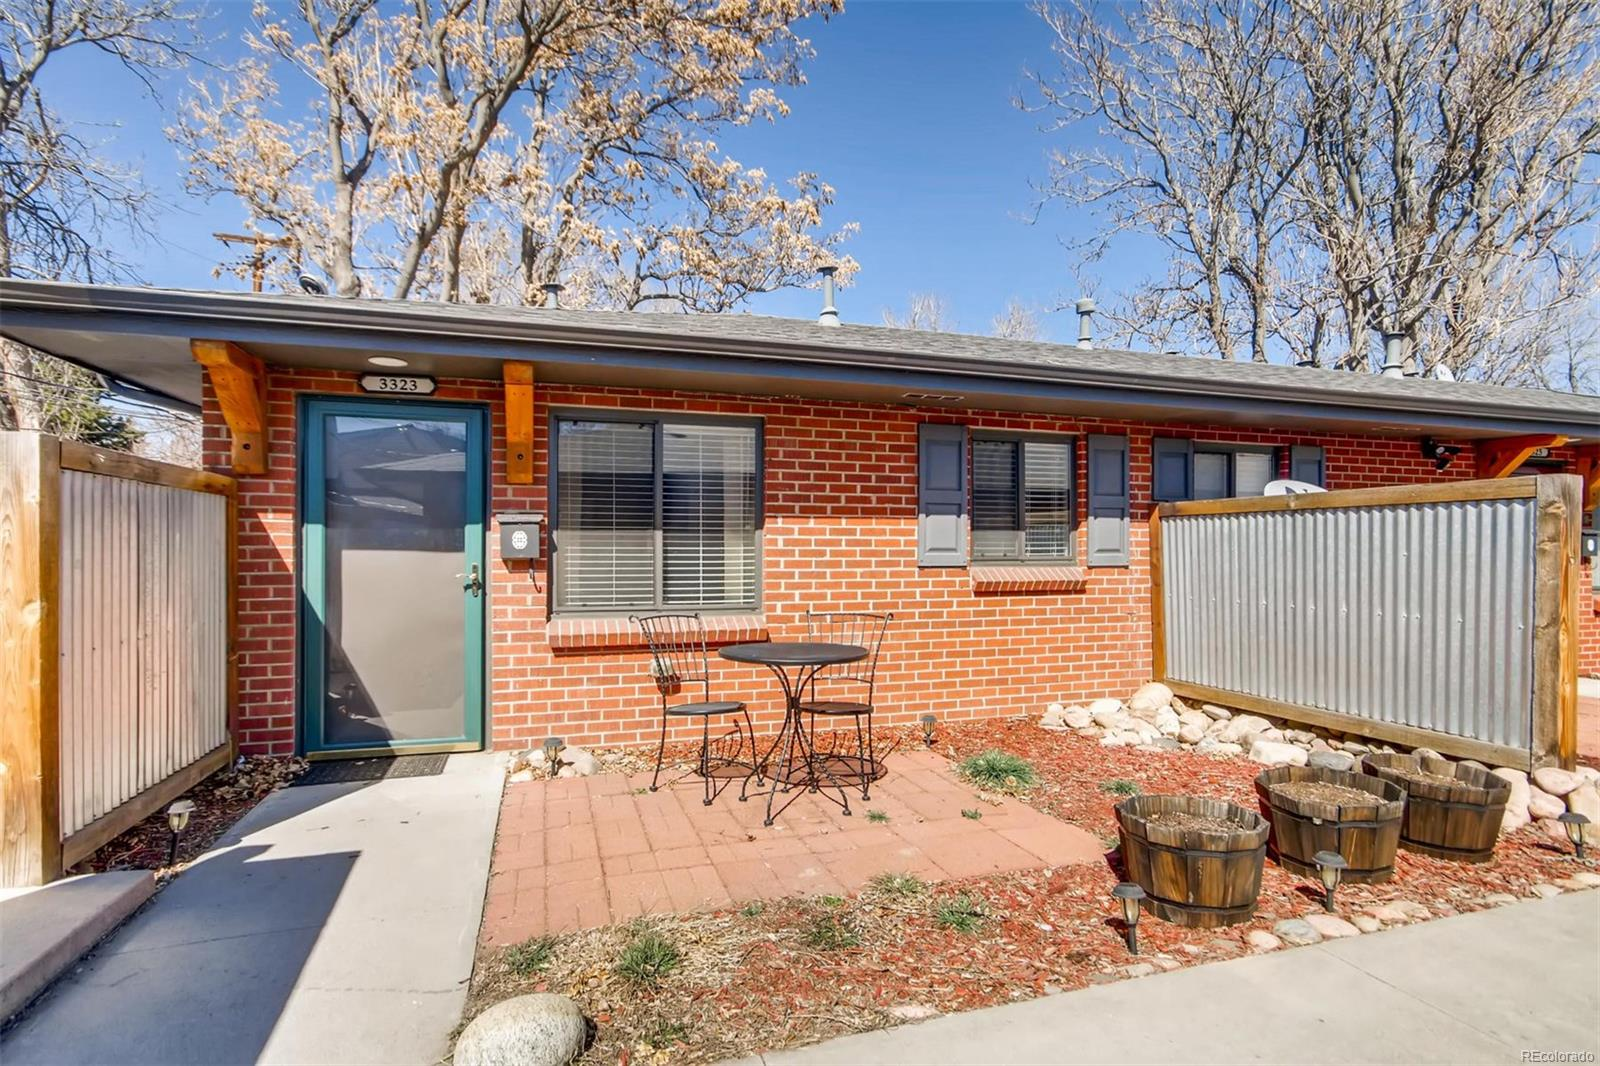 3323 Eliot St - $299,9951 bed, 1 bath538 sqftFirst Time Home BuyerFront patio AND back patio (with two sheds)Bright and Homey